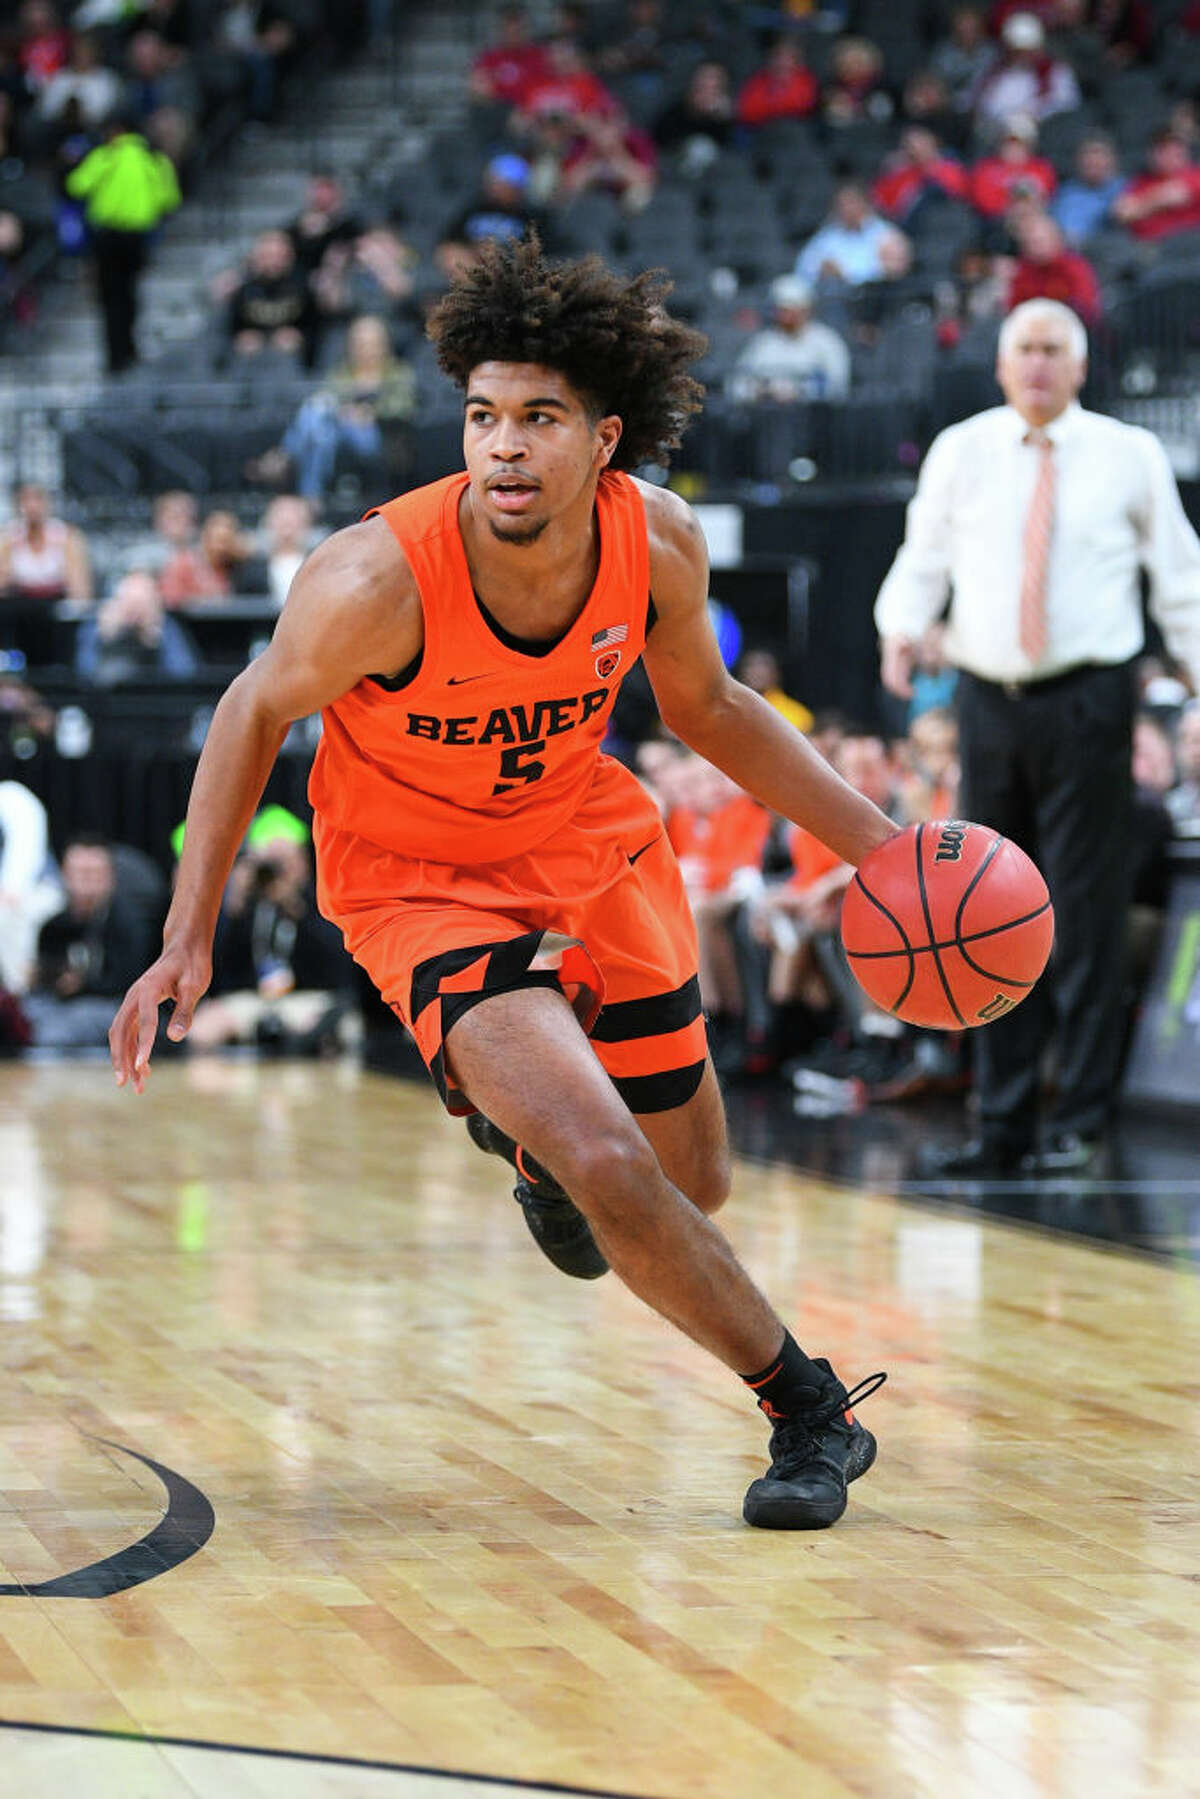 3. Oregon State Beavers (9-4, 1-0 Pac-12) Despite the rival Ducks being picked to win the conference before the season started, the Beavers knocked them off 77-72 on the road to start Pac-12 play. On the negative side of things though, Oregon State has yet to beat a ranked team, and all of their losses have come against unranked opponents. The Beavers are riding high on the success of forward Tres Tinkle, who is averaging 20.5 points and 8.6 boards per game. Time will tell if OSU can keep winning, but they're in the top half of the conference for now.